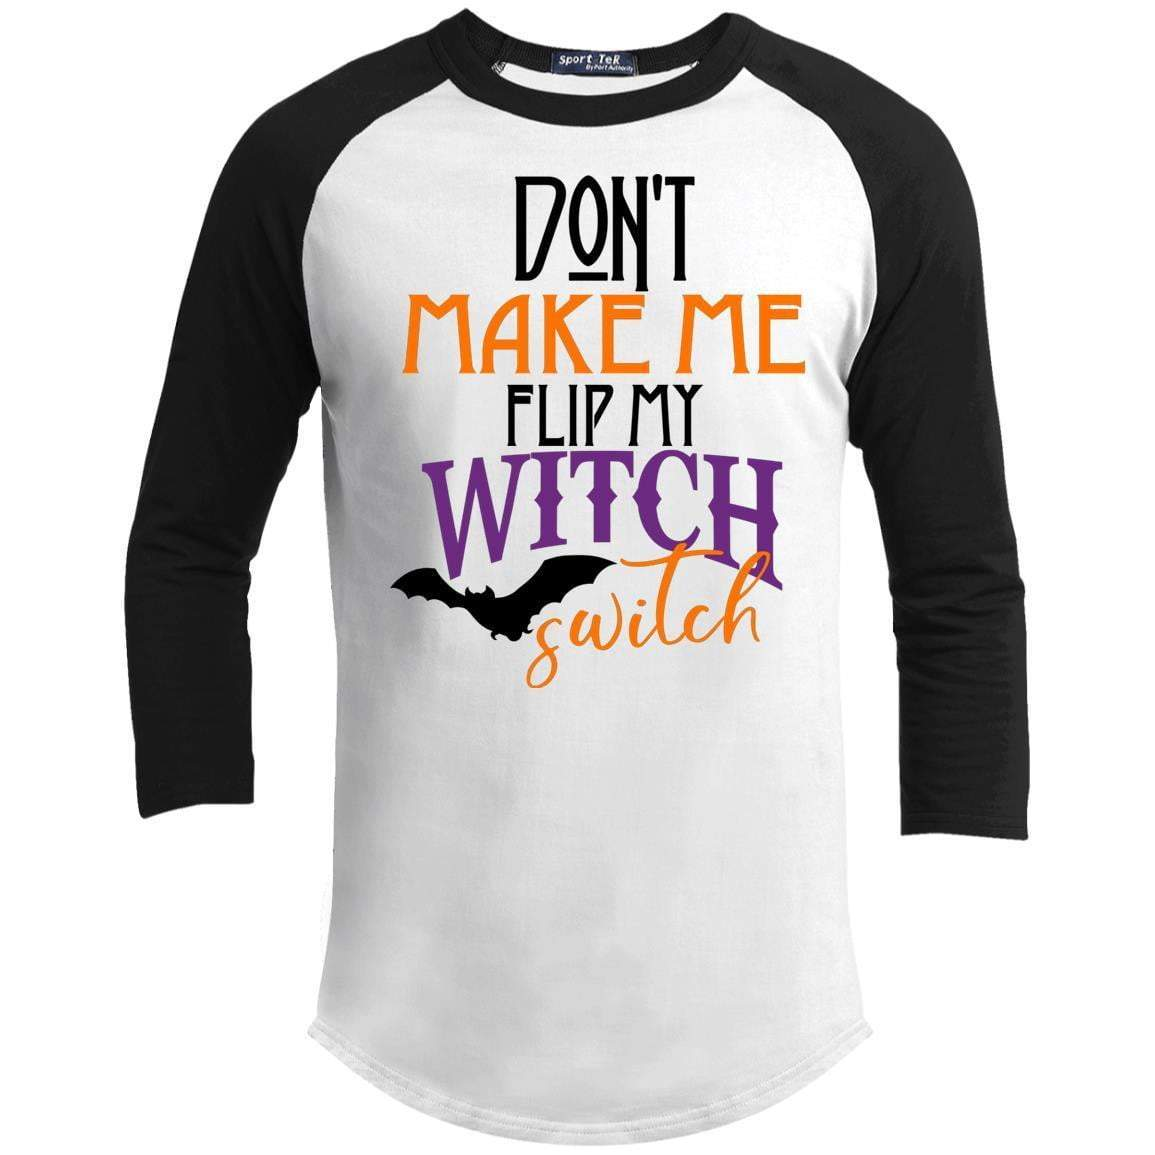 DON'T MAKE ME FLIP MY WITCH SWITCH Unisex 3/4 Sleeve Raglan